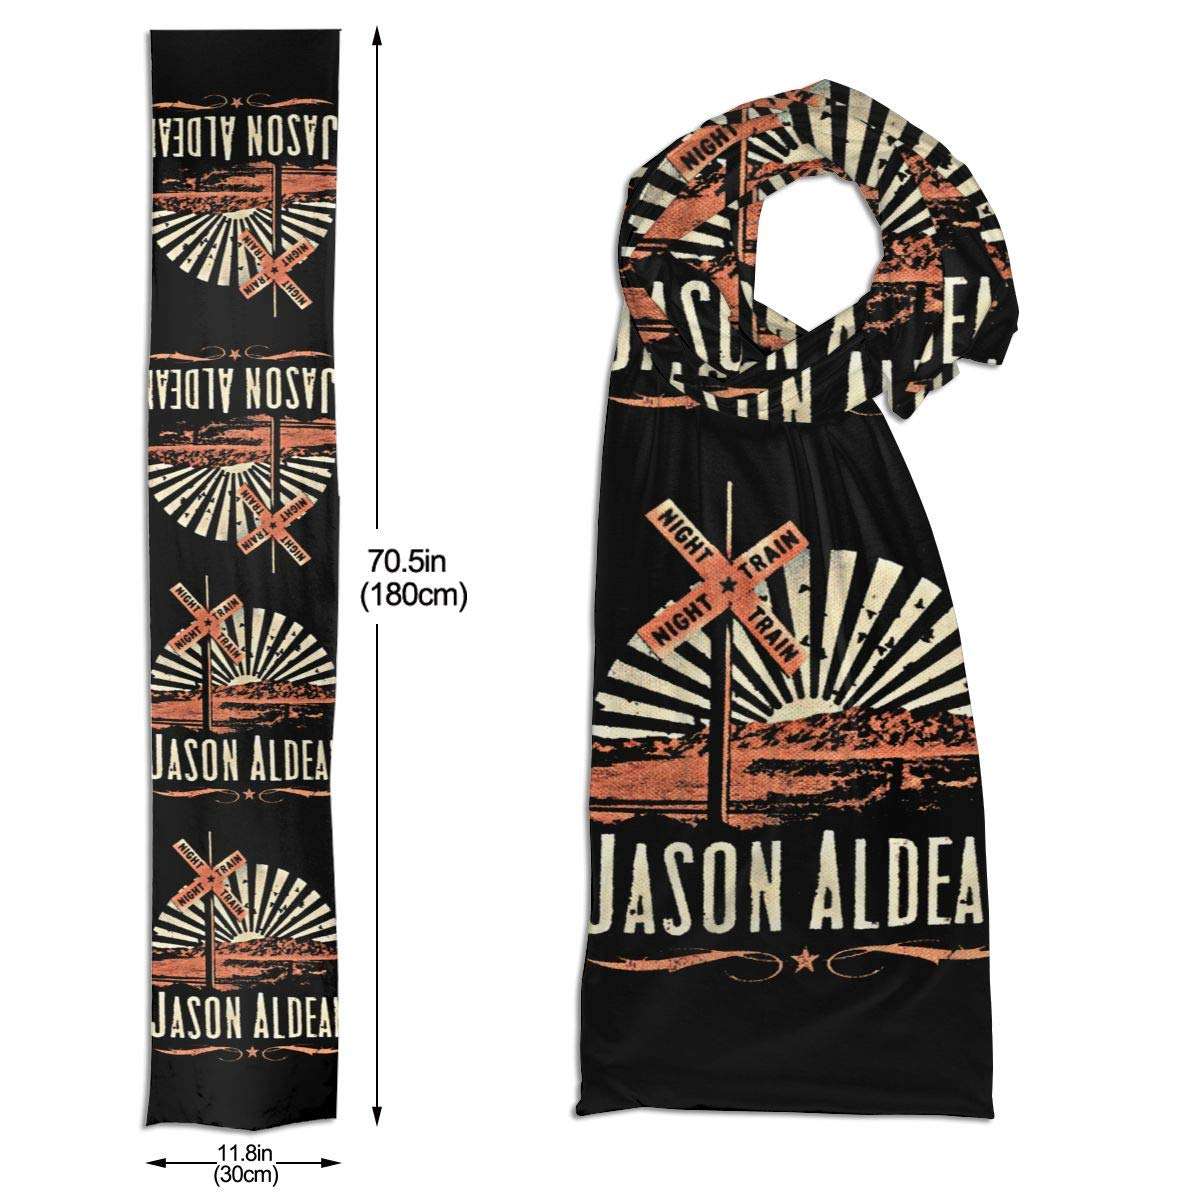 Jason Aldean Scarf Autumn And Winter Warm Unisex Soft And Comfortable Fashion Pattern Scarf 71x11